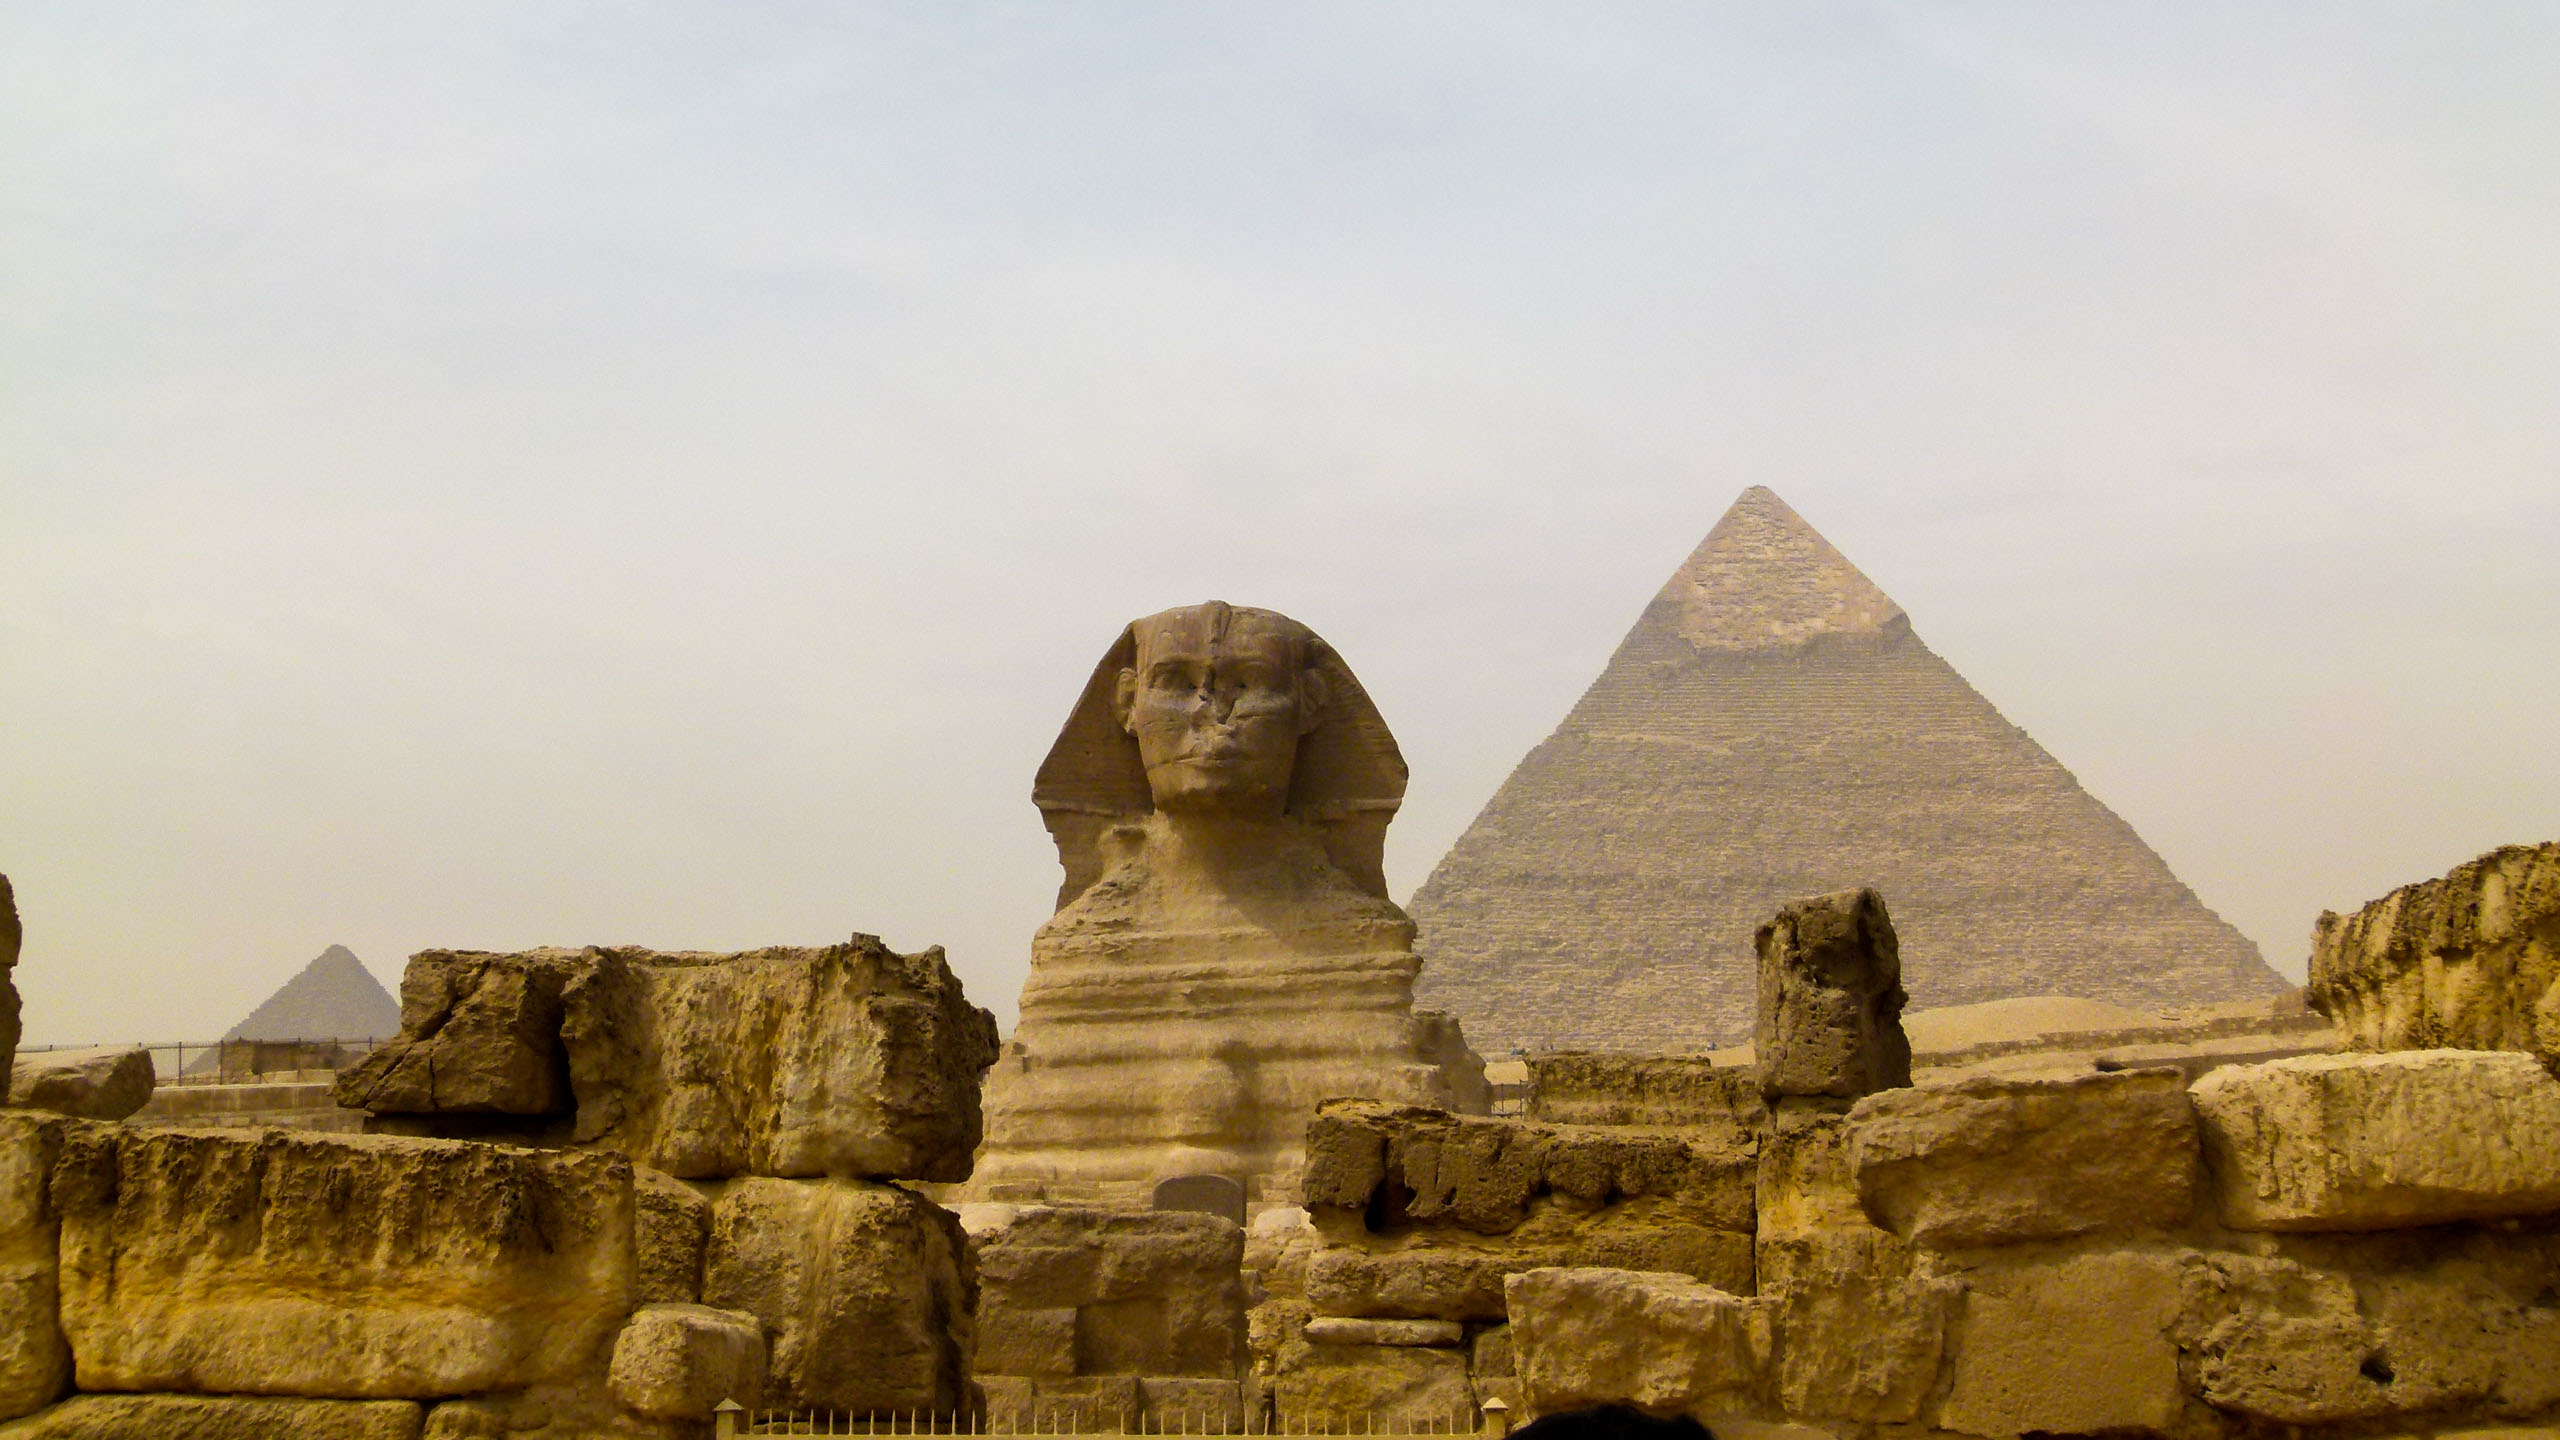 Sphinx and Pyramids of Giza, Egypt